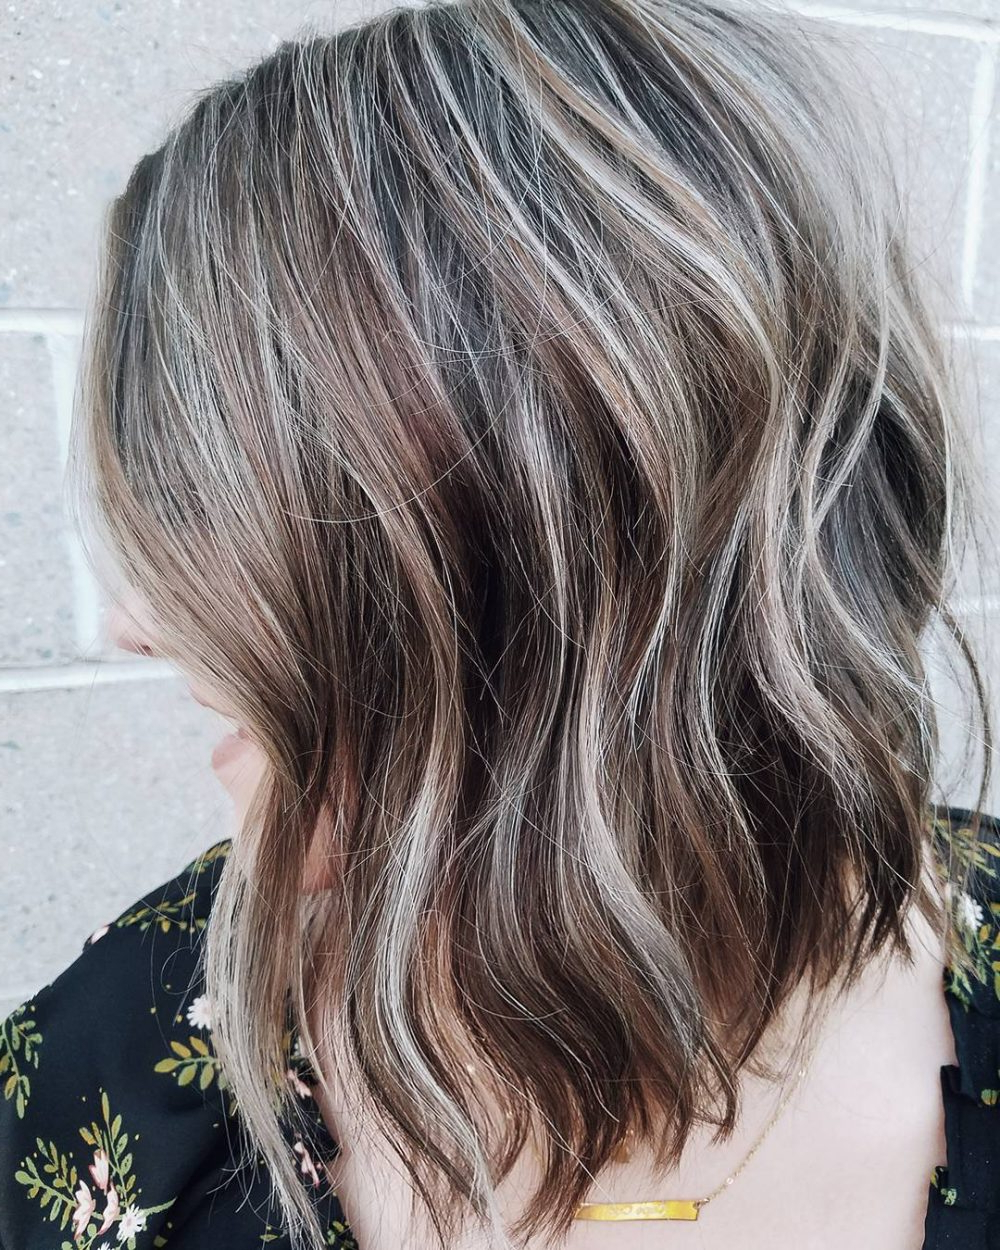 43 Perfect Short Hairstyles For Fine Hair In 2018 Inside Airy Gray Pixie Hairstyles With Lots Of Layers (Gallery 20 of 20)